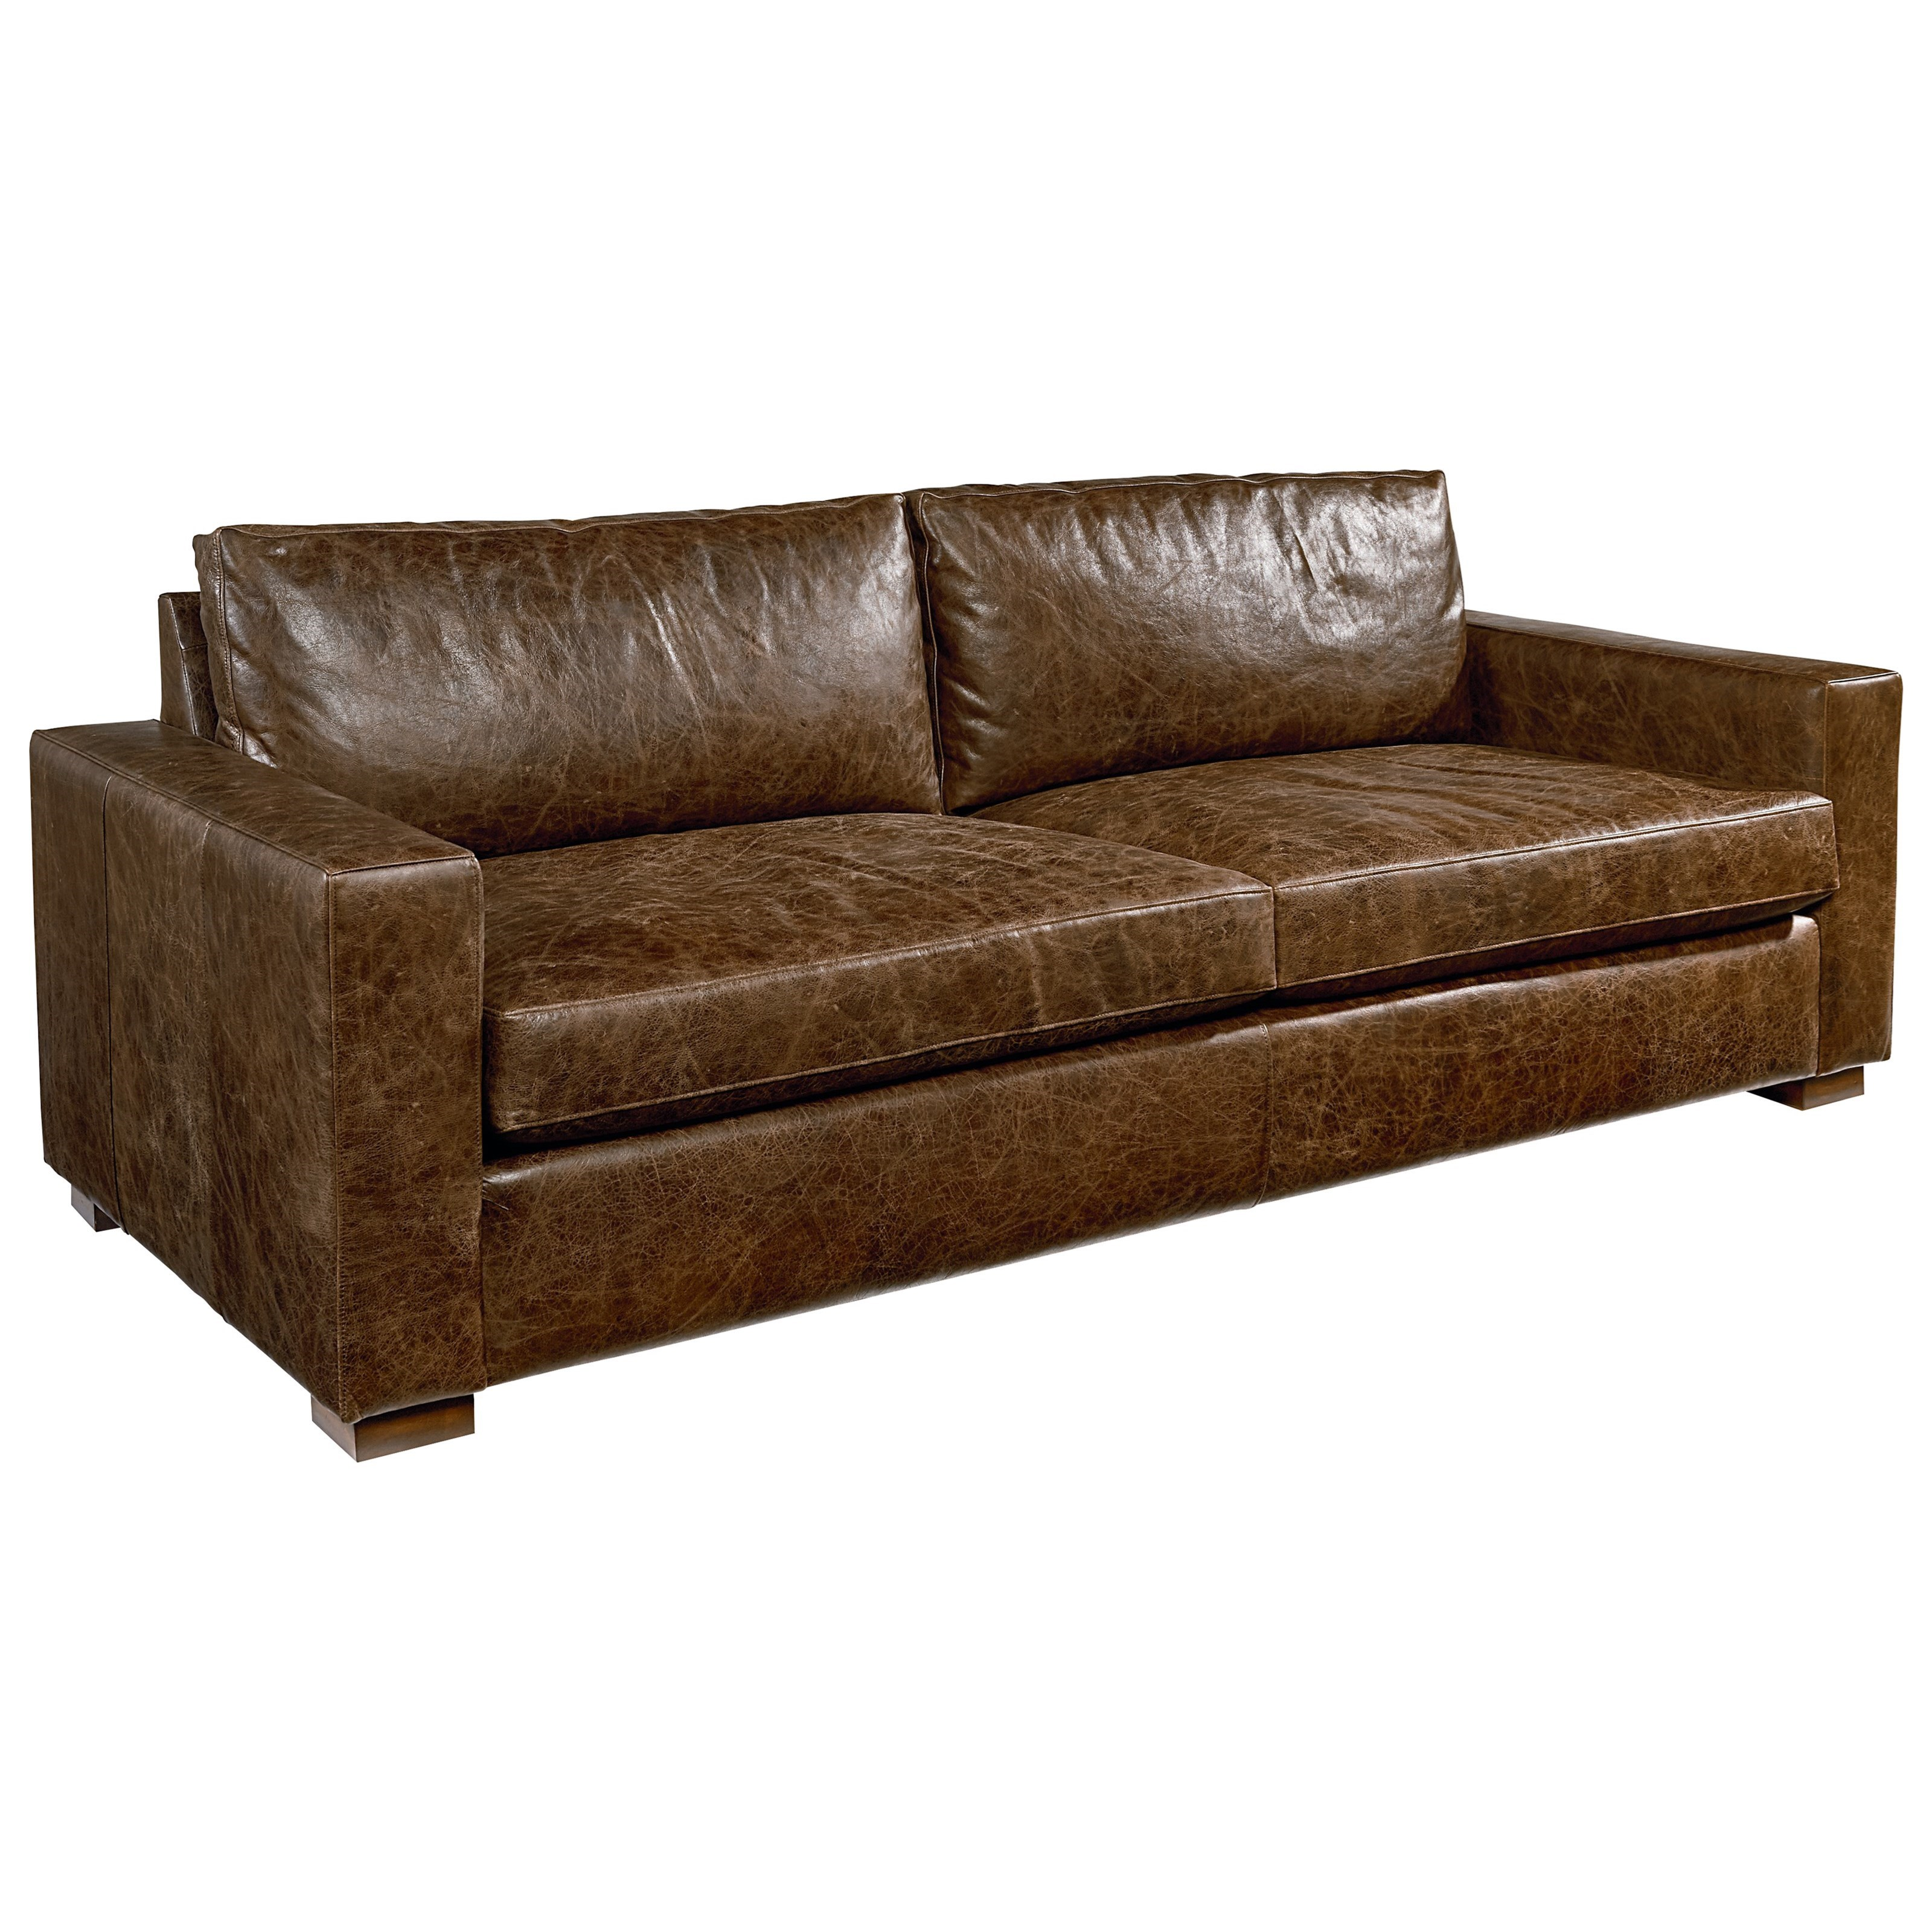 southern motion velocity reclining sofa how to make bed more comfortable furniture greer jordan s - thesofa